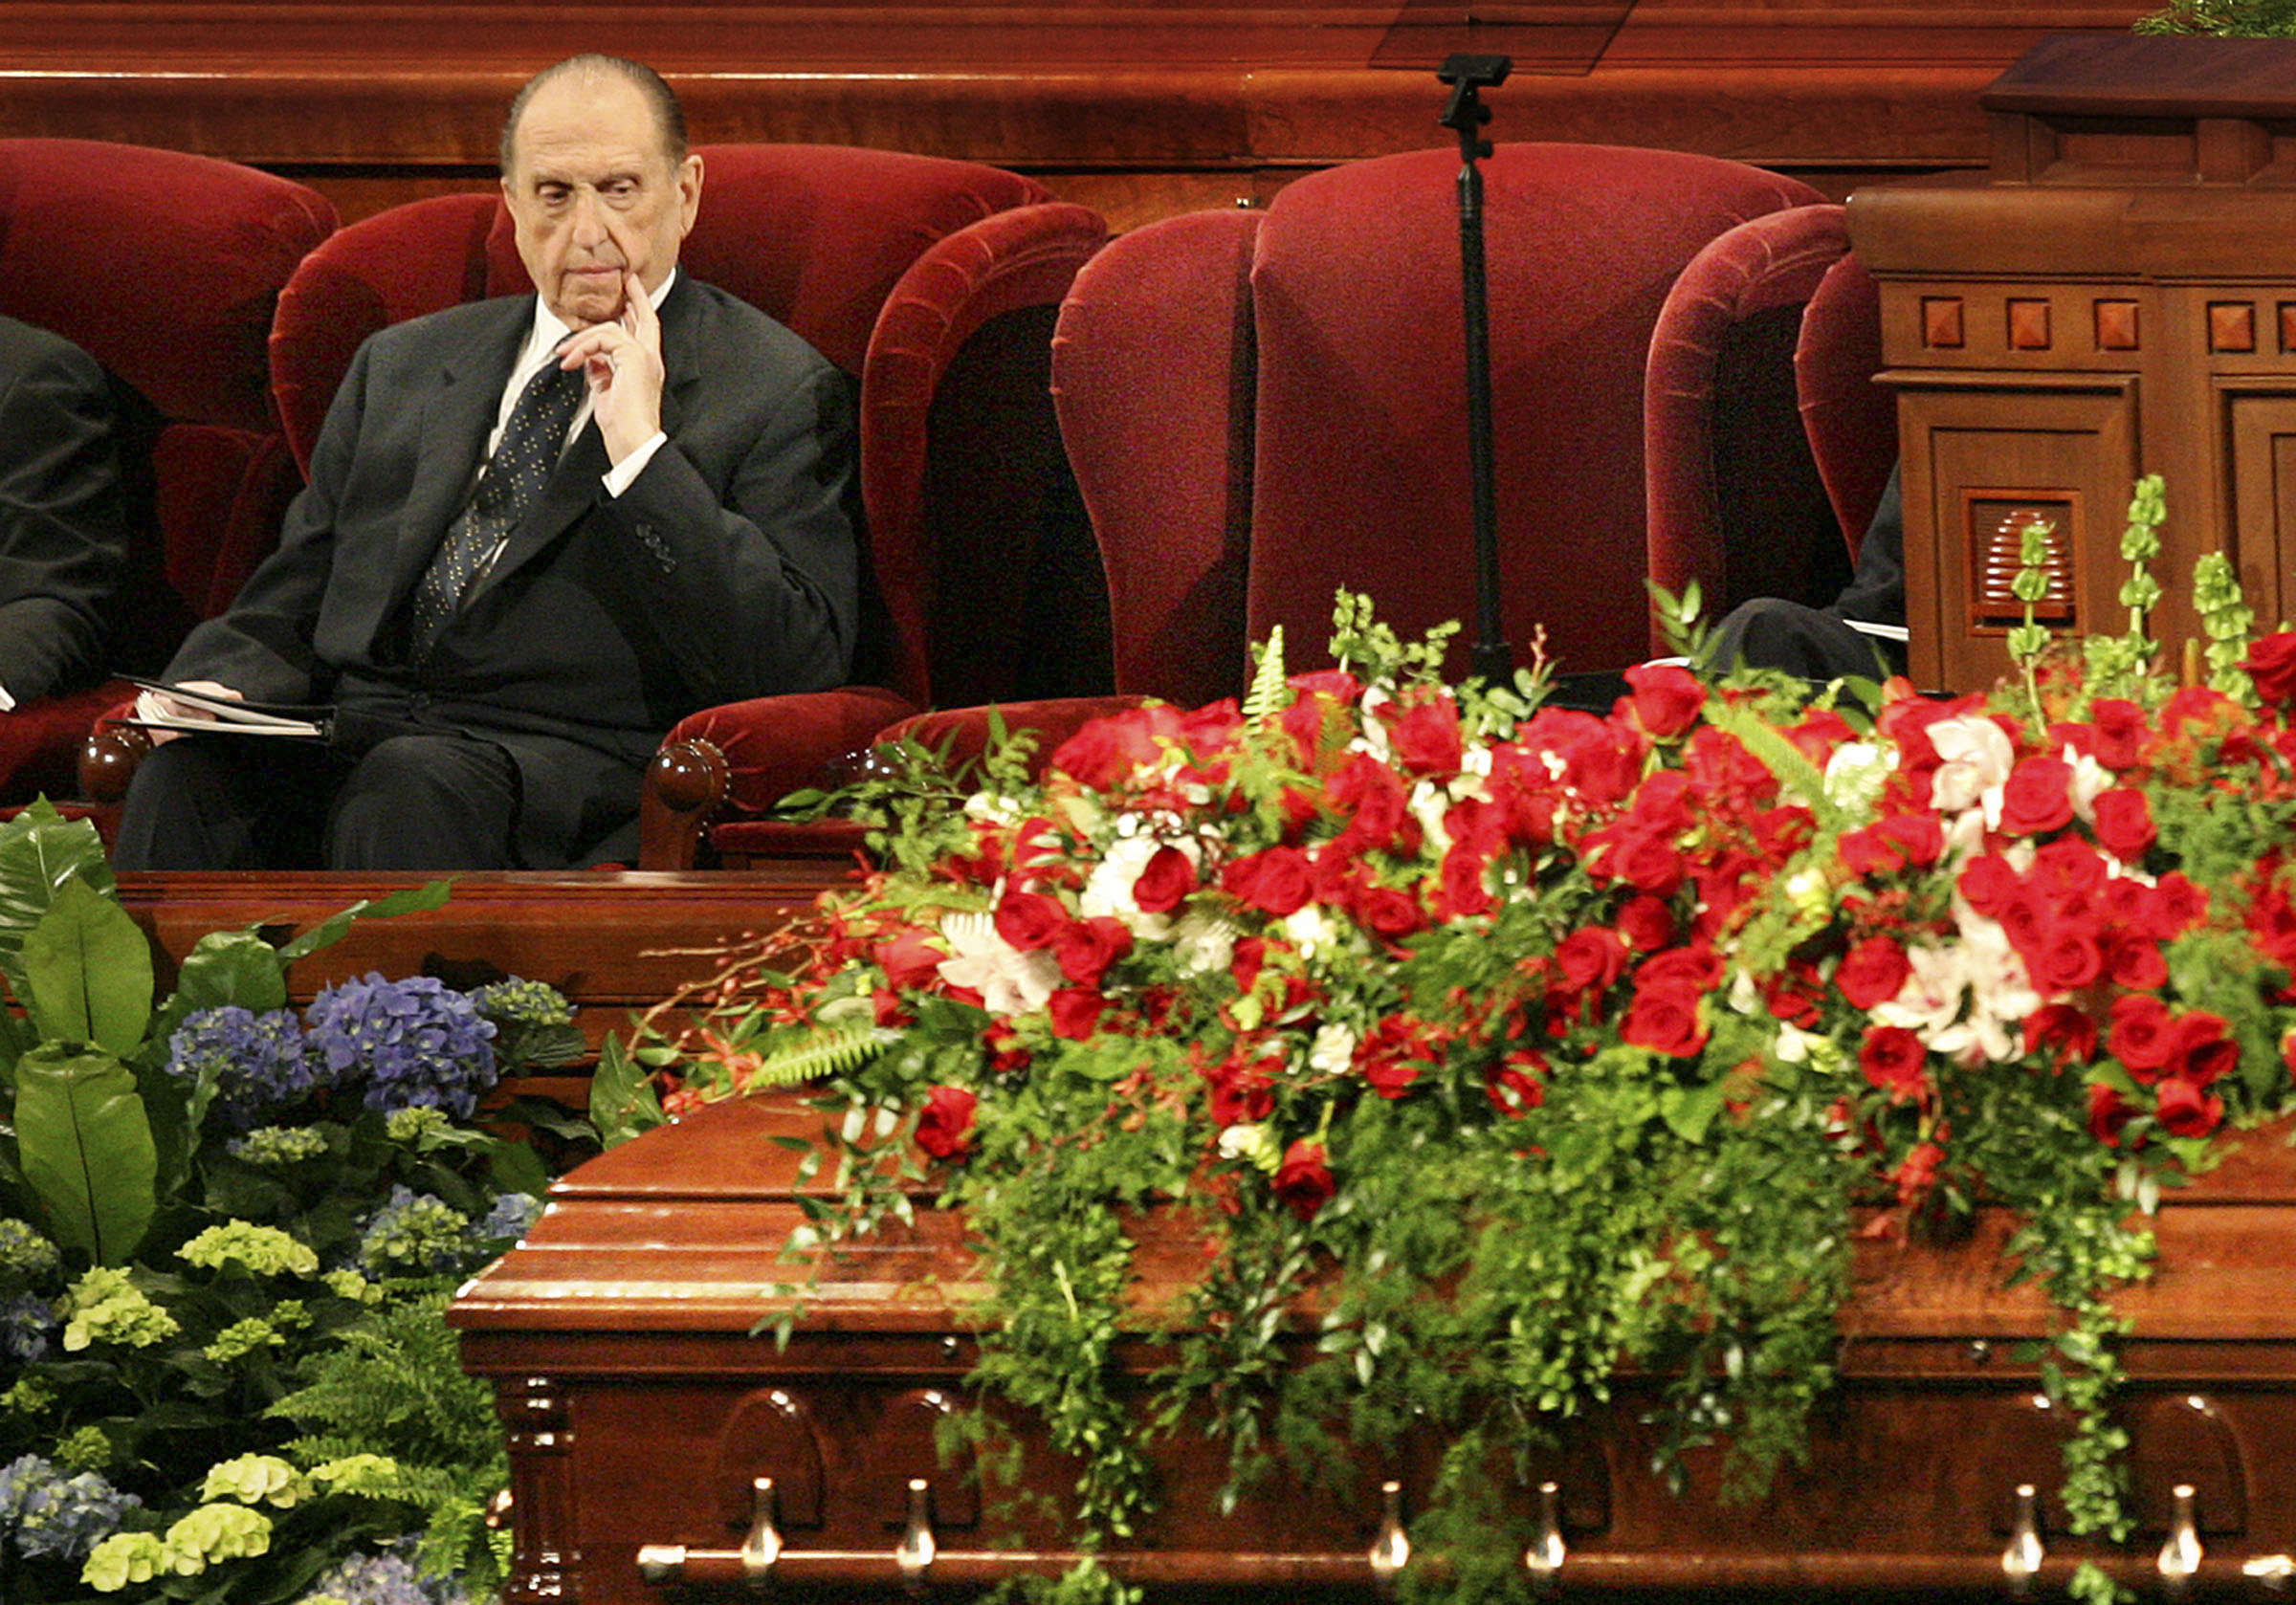 (Scott Sommedorf  |  The Salt Lake Tribune) President Thomas S. Monson ponders at the funeral for his friend President Gordon B. Hinckley at the Conference Center on Feb. 2, 2008.